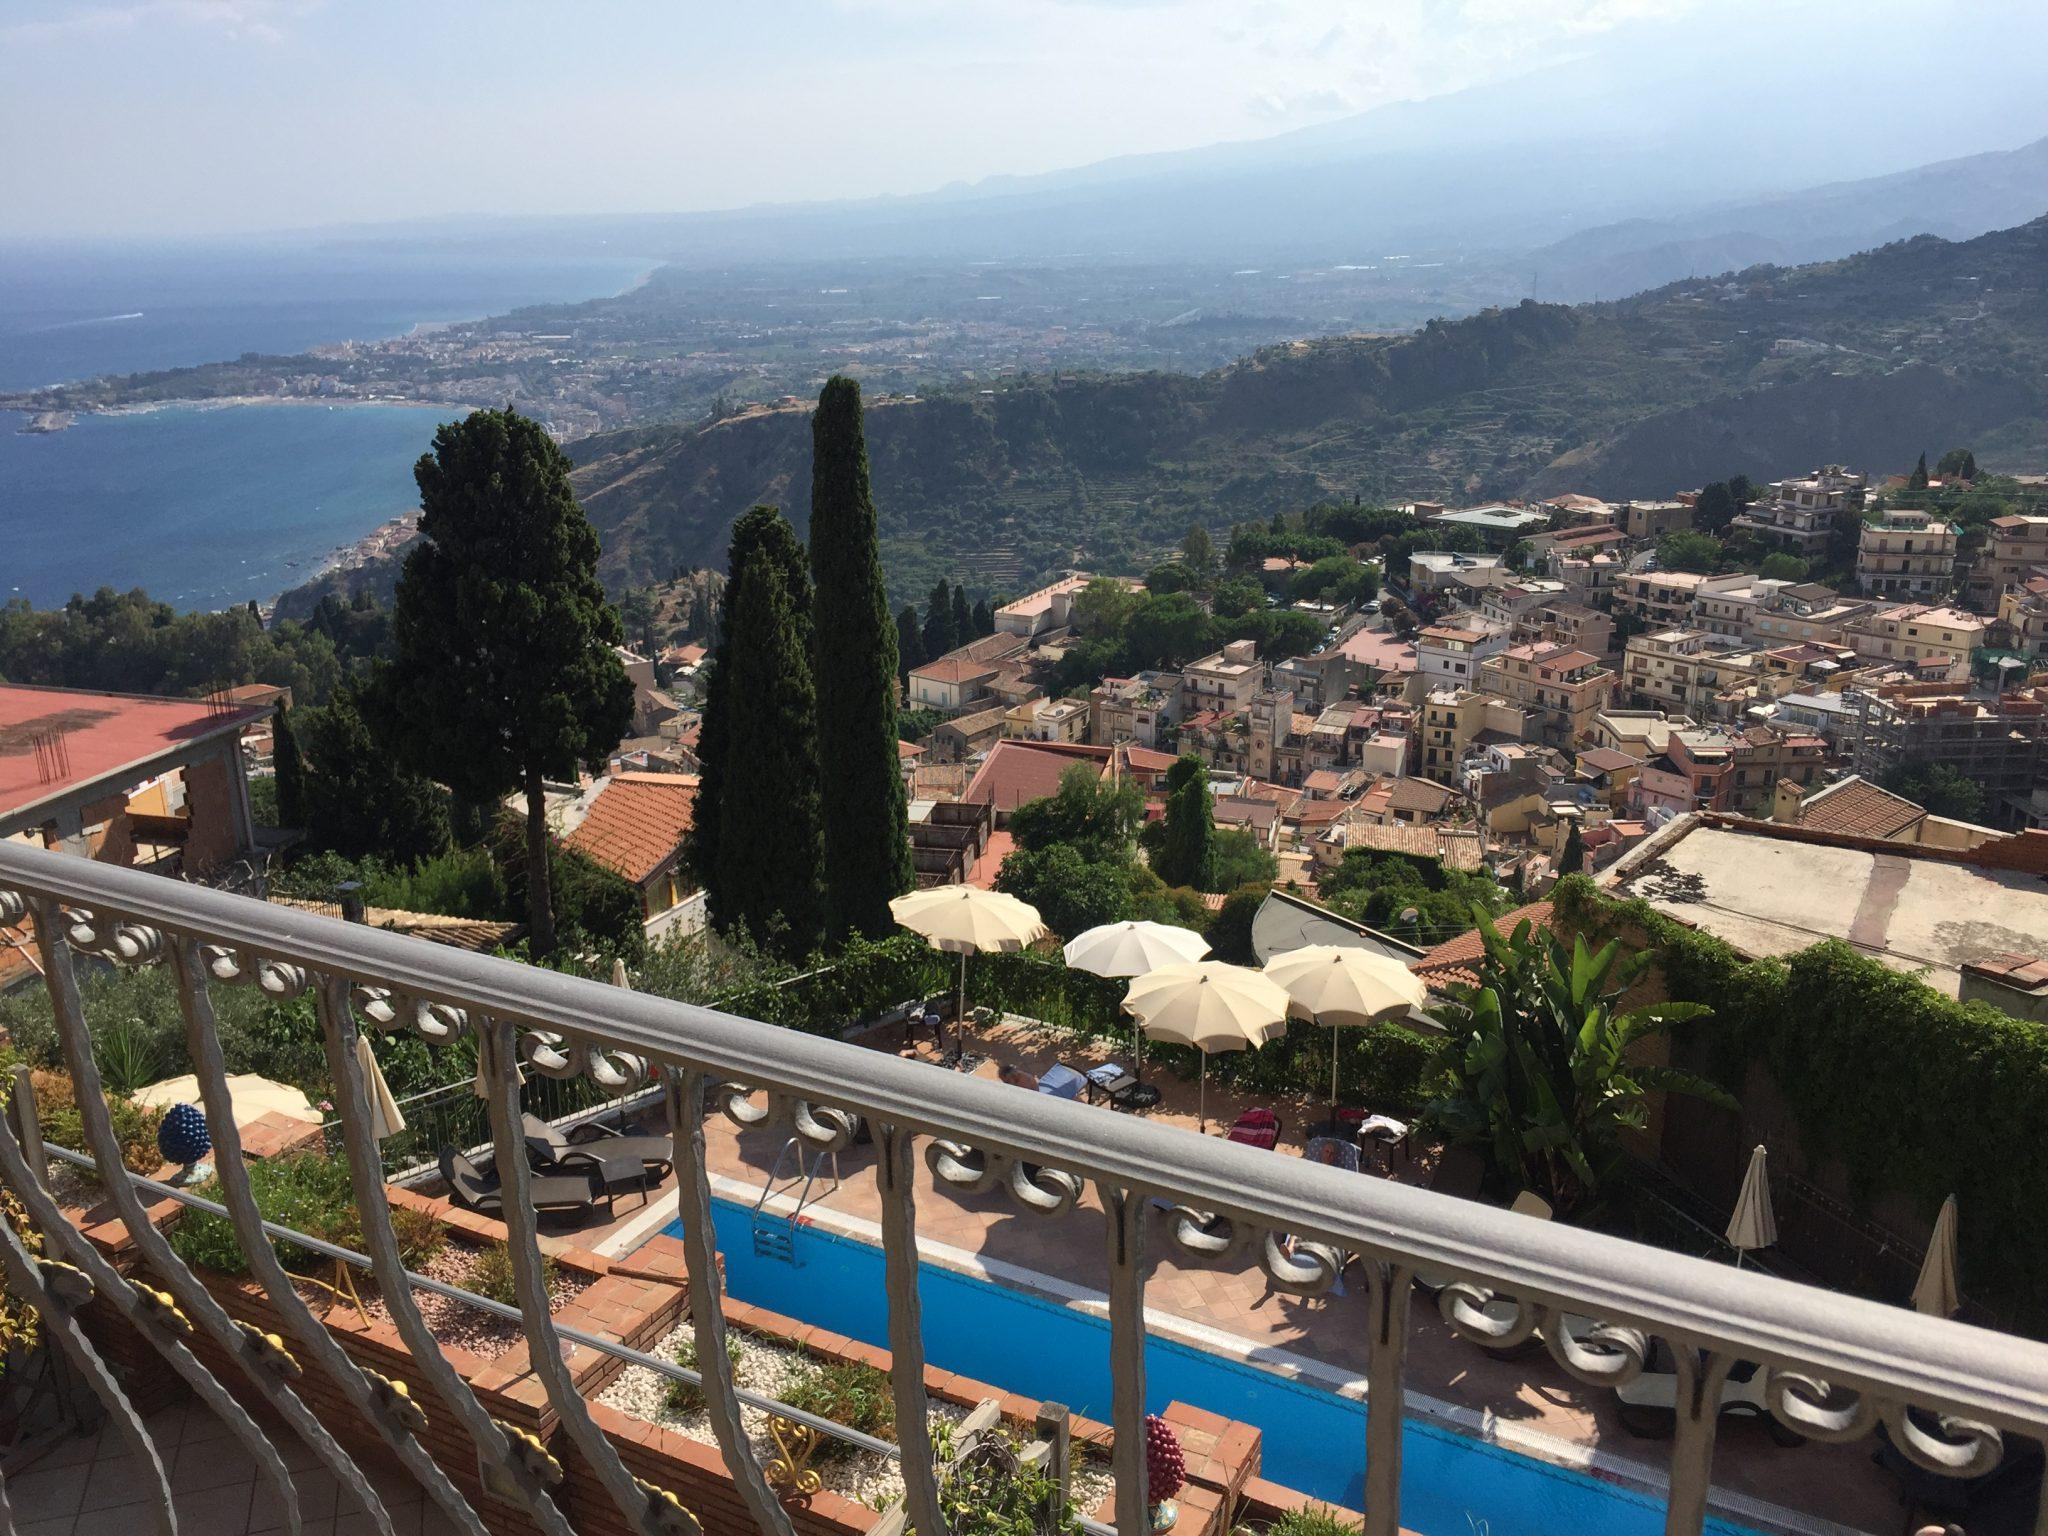 The view from Hotel Villa Angela over Taormina